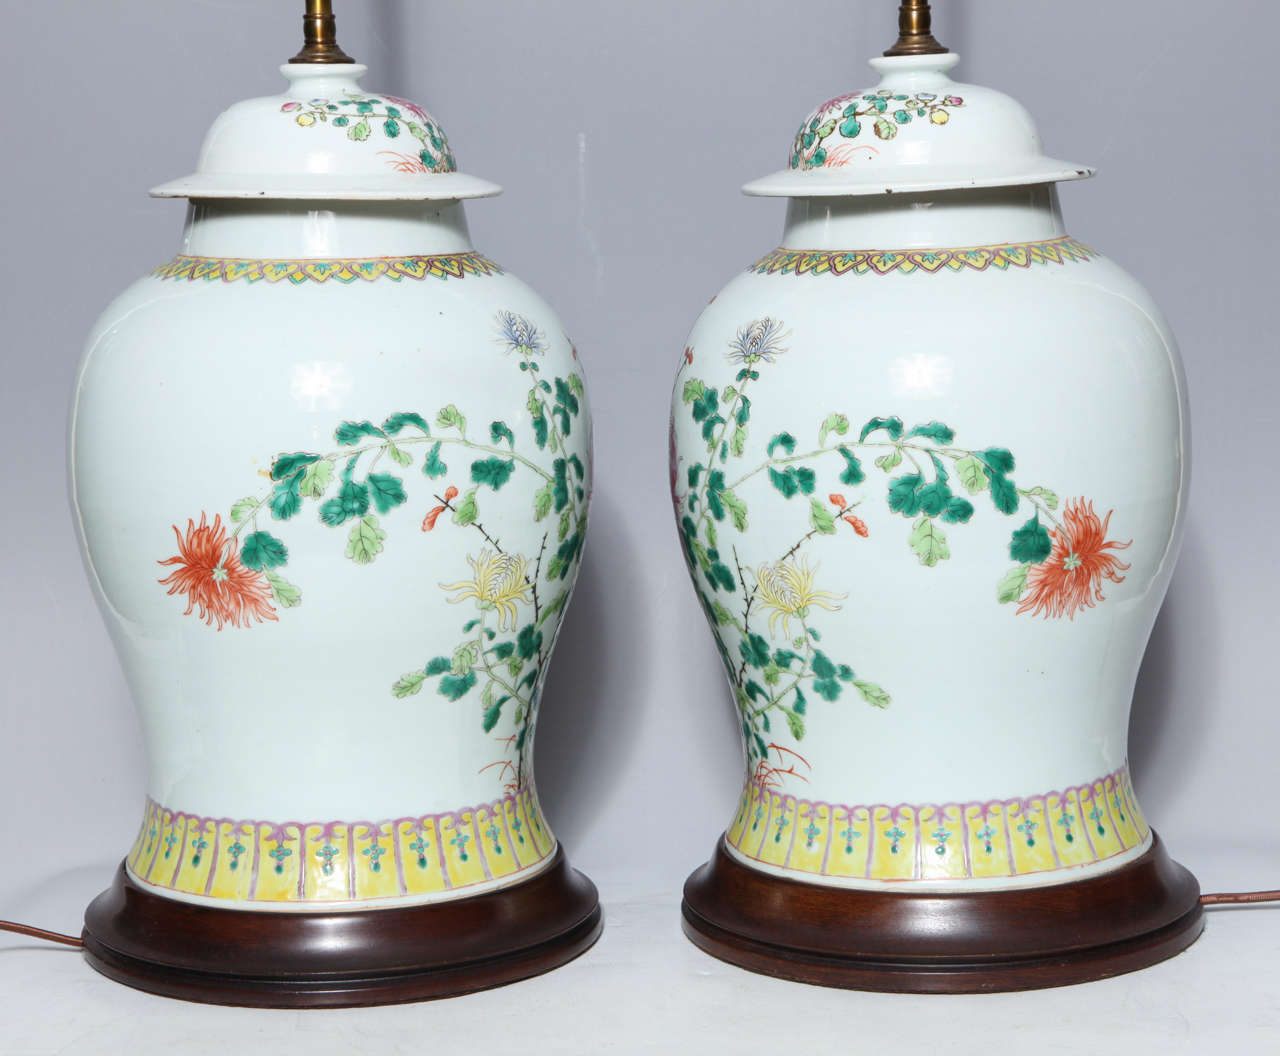 Pair of 19th Century Chinese Porcelain Ginger Jars Converted into Table Lamps For Sale 5